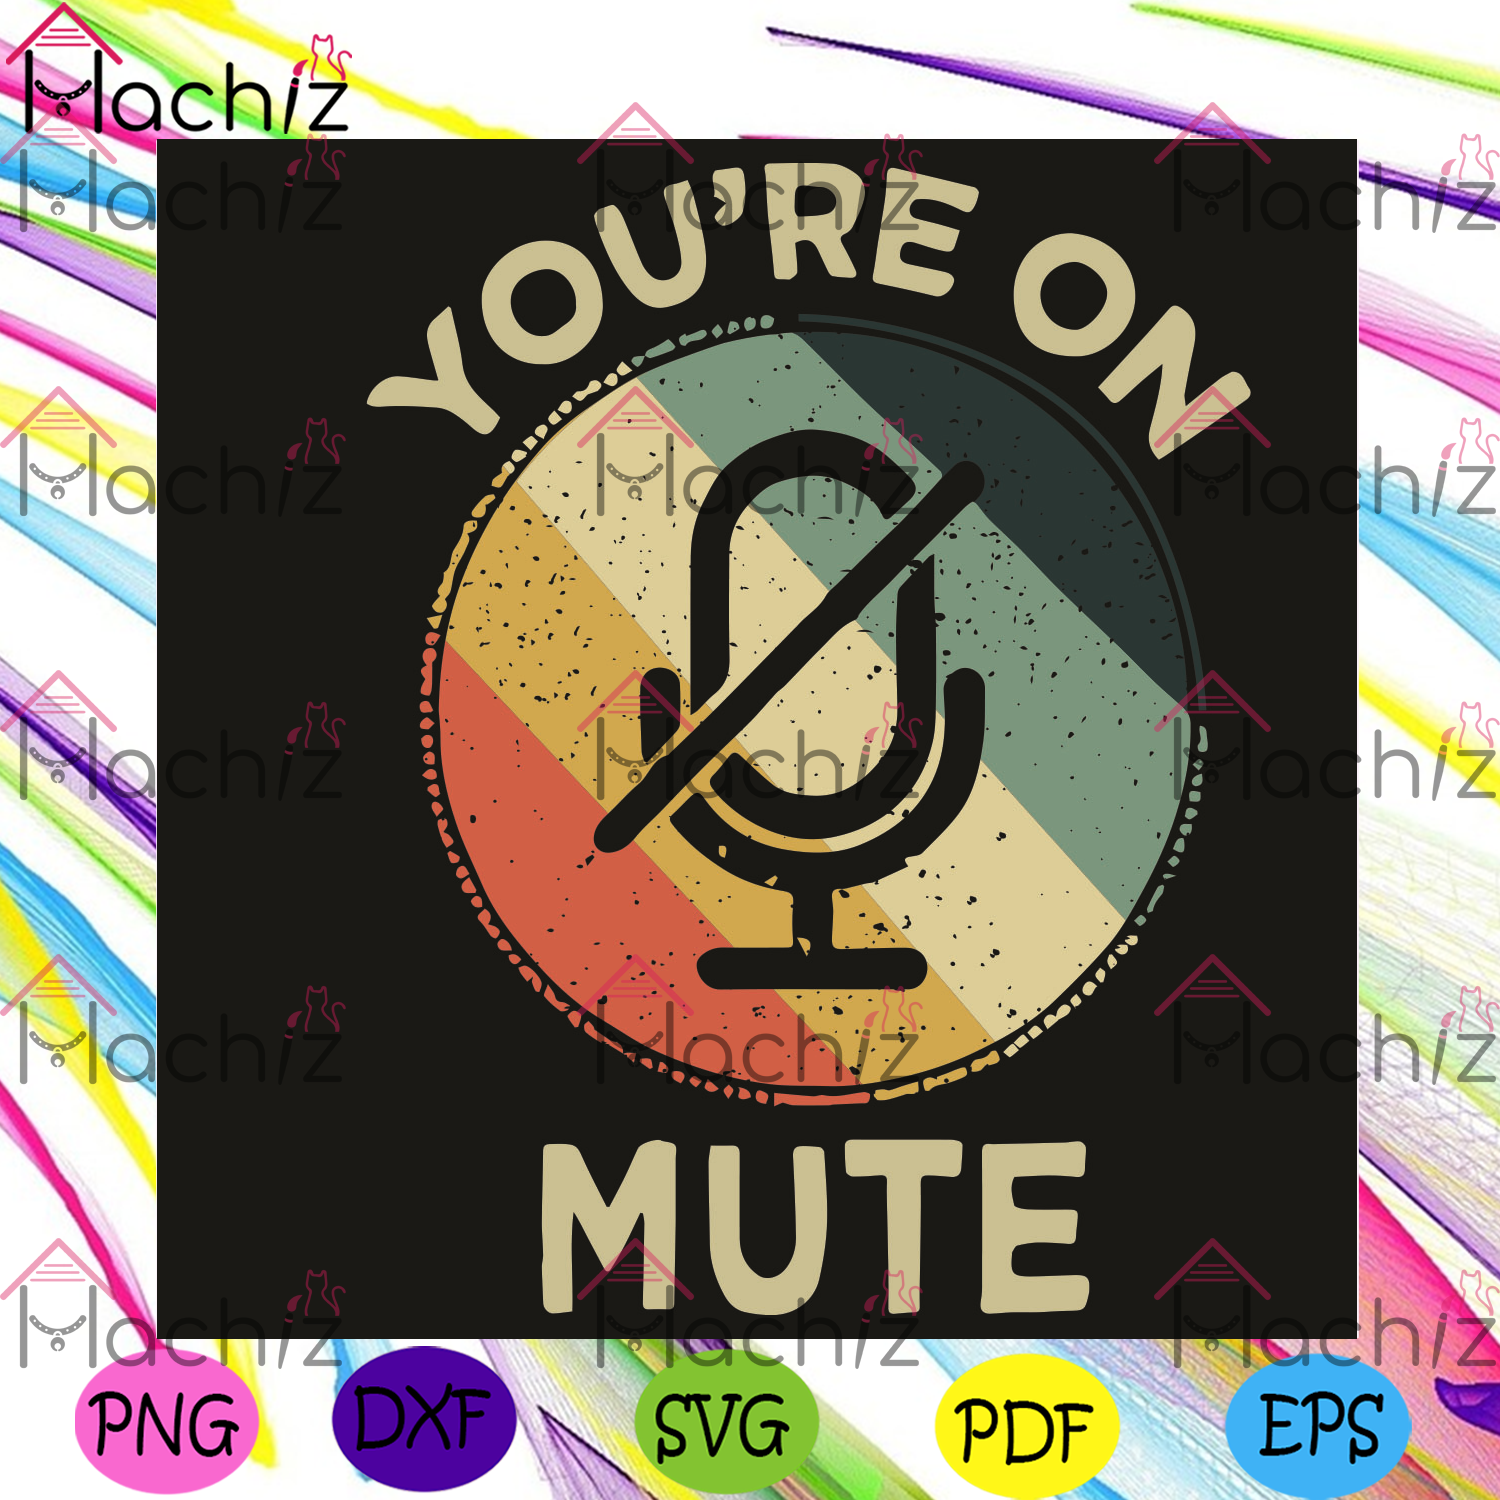 You are on mute Svg, You are on mute shirt, You are on mute gift, Mute icon svg, Mute svg, Mute shirt, mute gift, vintage style svg, vintage shirt, vintage gift, silent svg, friend gifts, Files For Silhouette, Files For Cricut, SVG, DXF, EPS, PNG,